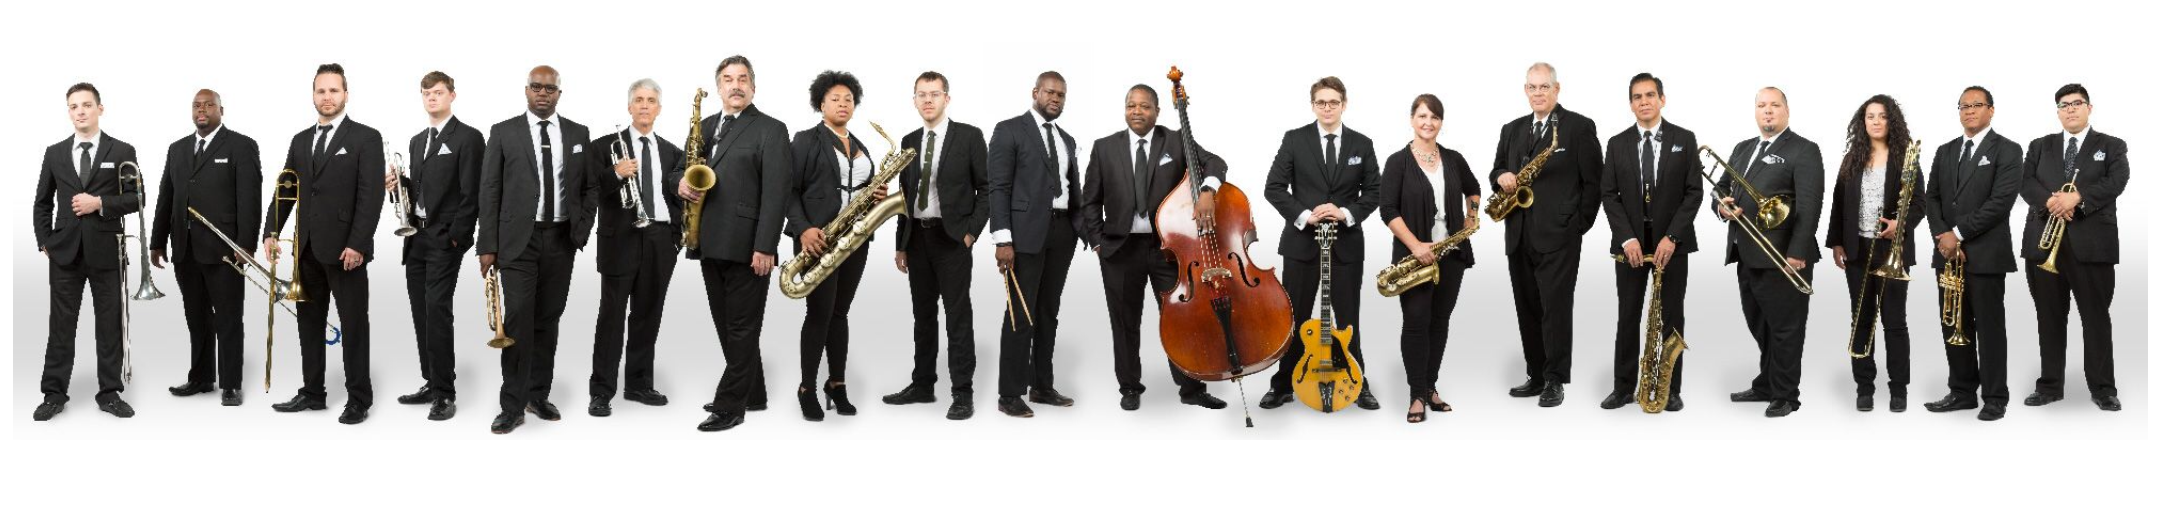 The Dr. Phillips Jazz Orchestra members